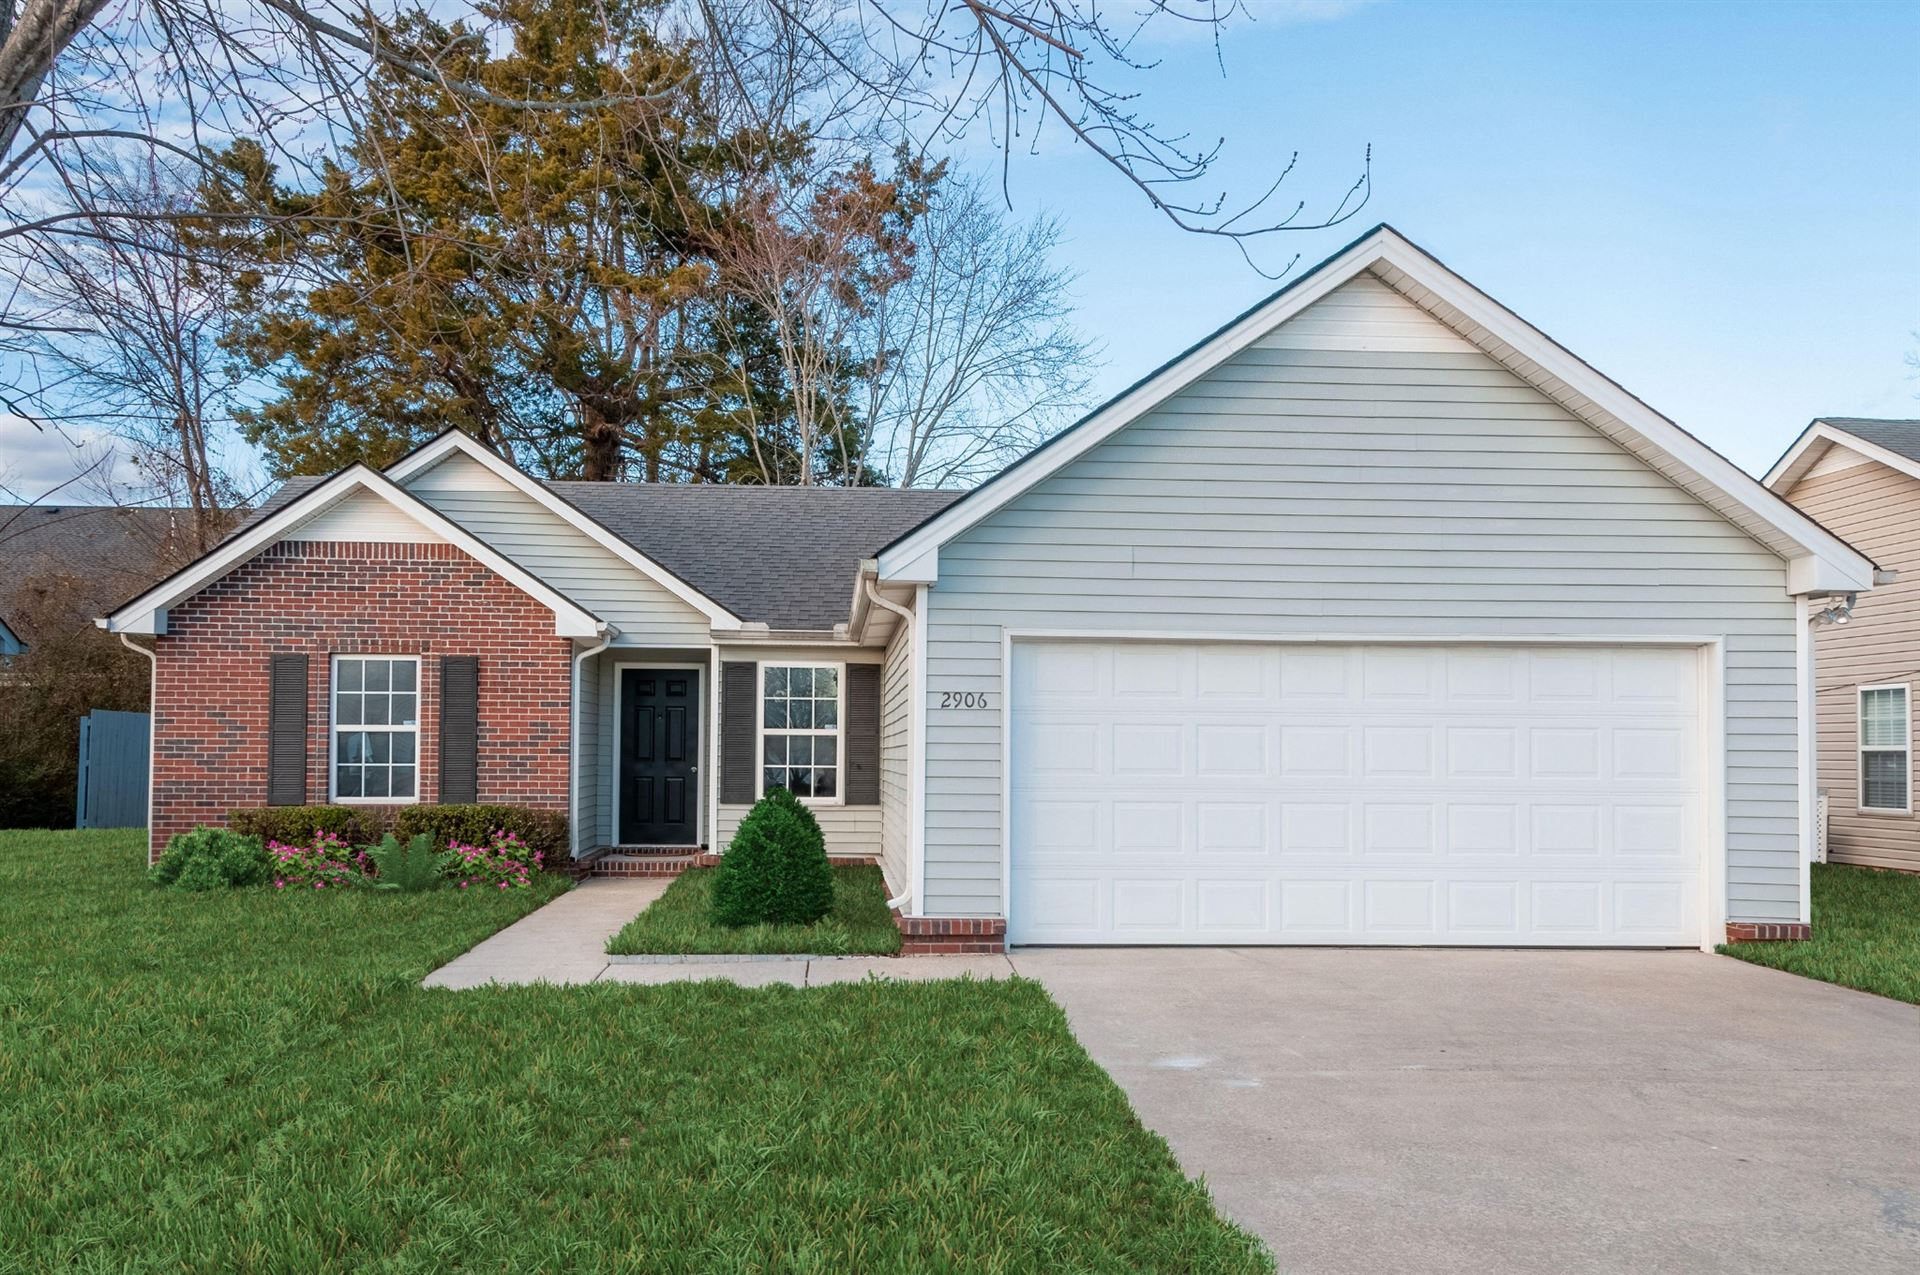 Photo of 2906 Roscommon Dr, Murfreesboro, TN 37128 (MLS # 2222335)